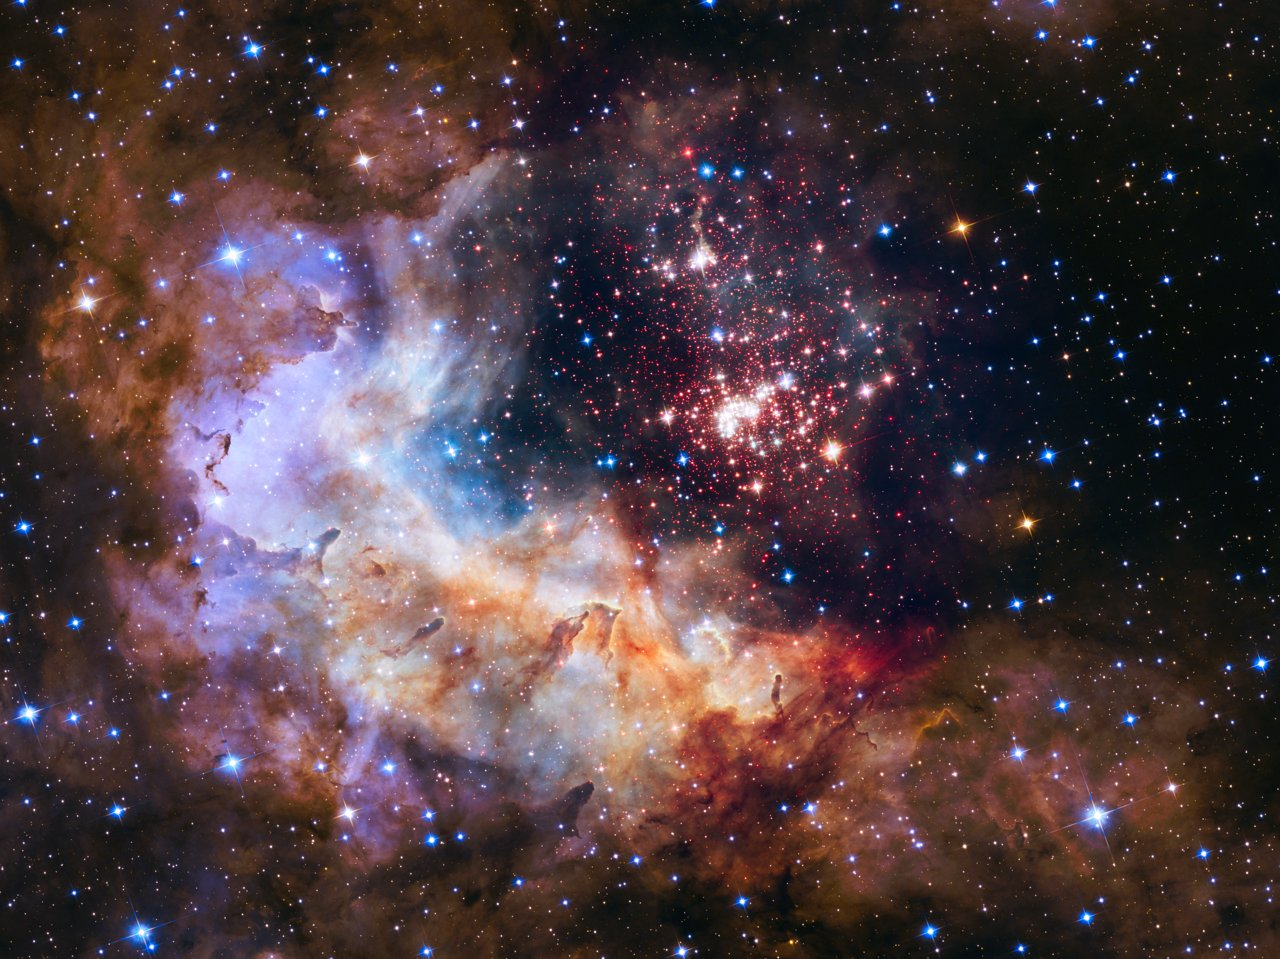 Photo Release: Celestial fireworks celebrate Hubble's 25th anniversary